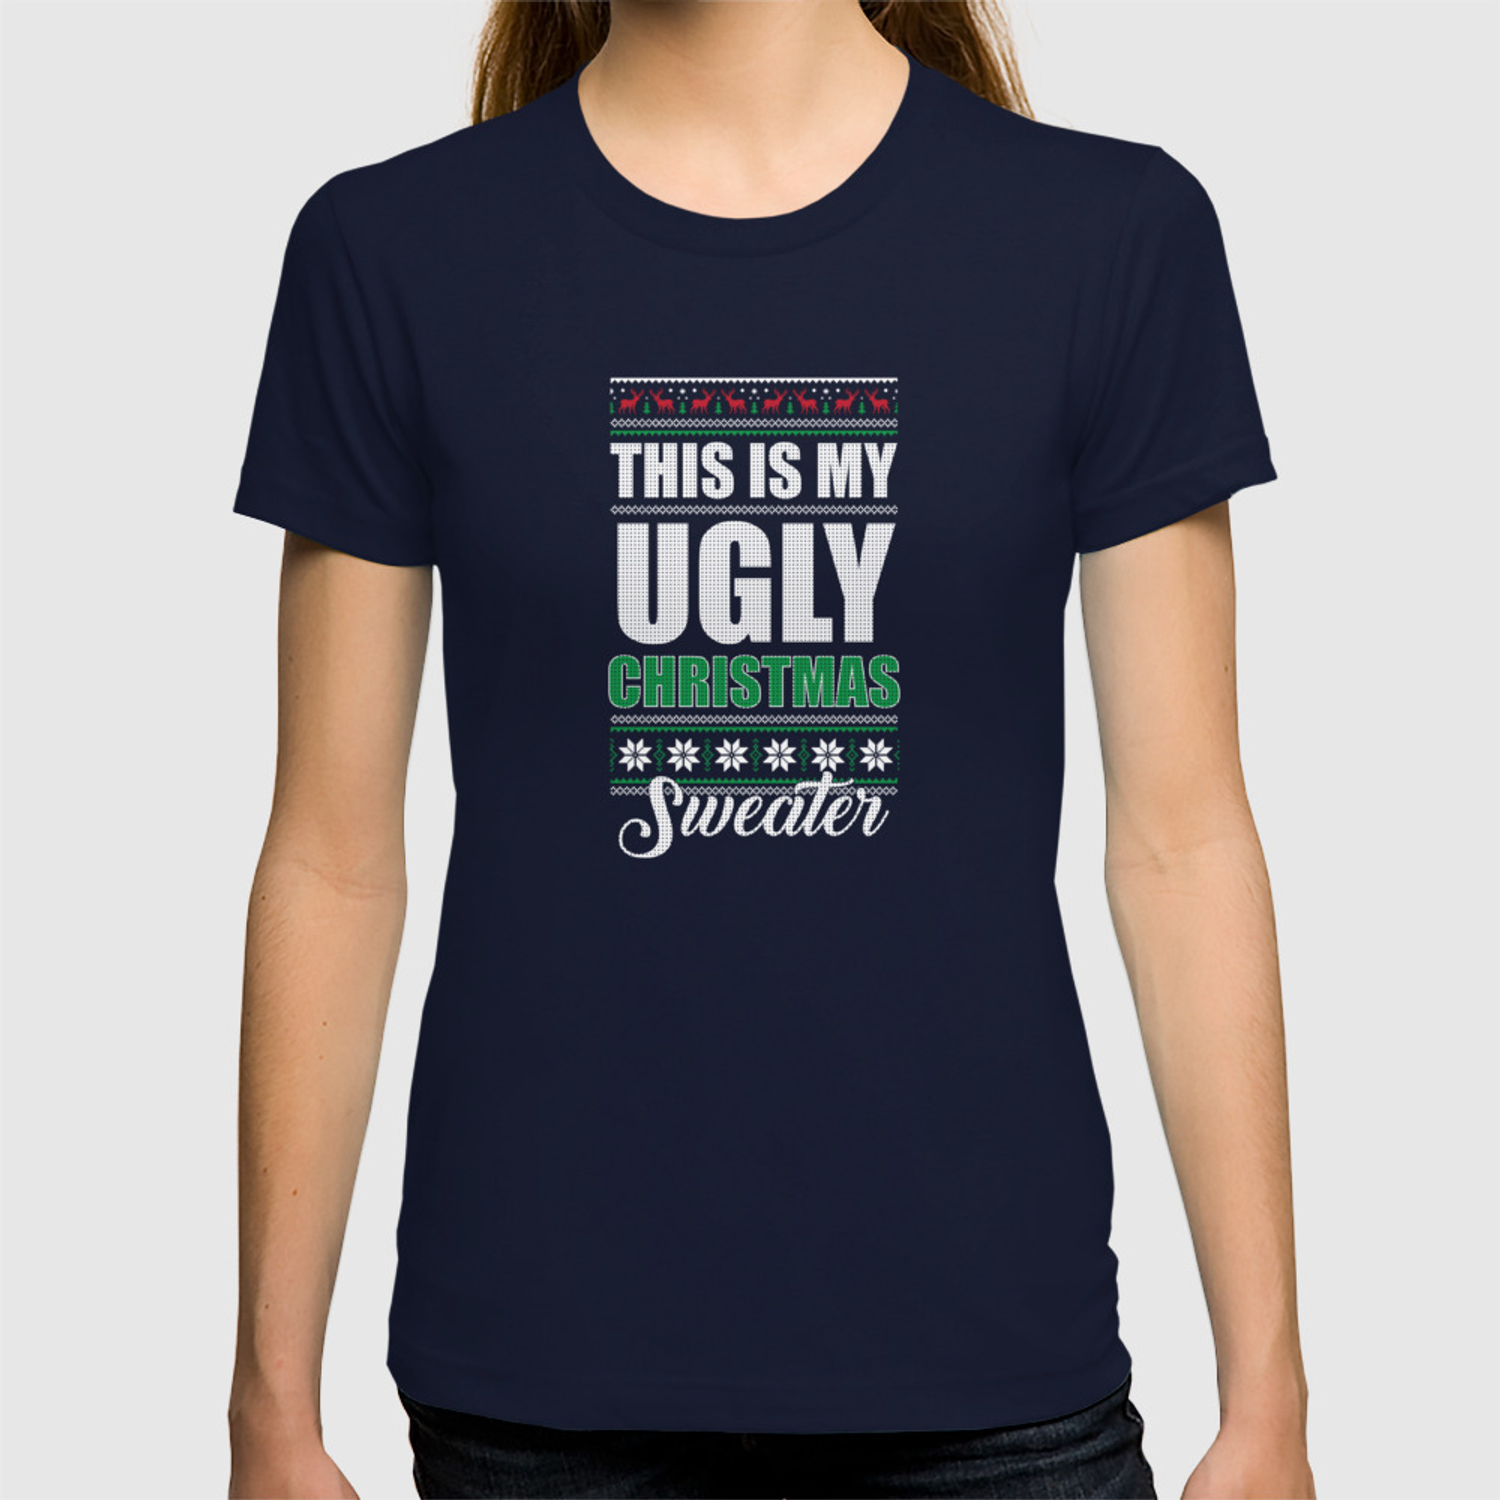 Ugly Christmas Sweater Funny.My Ugly Christmas Sweater Funny Holiday T Shirt